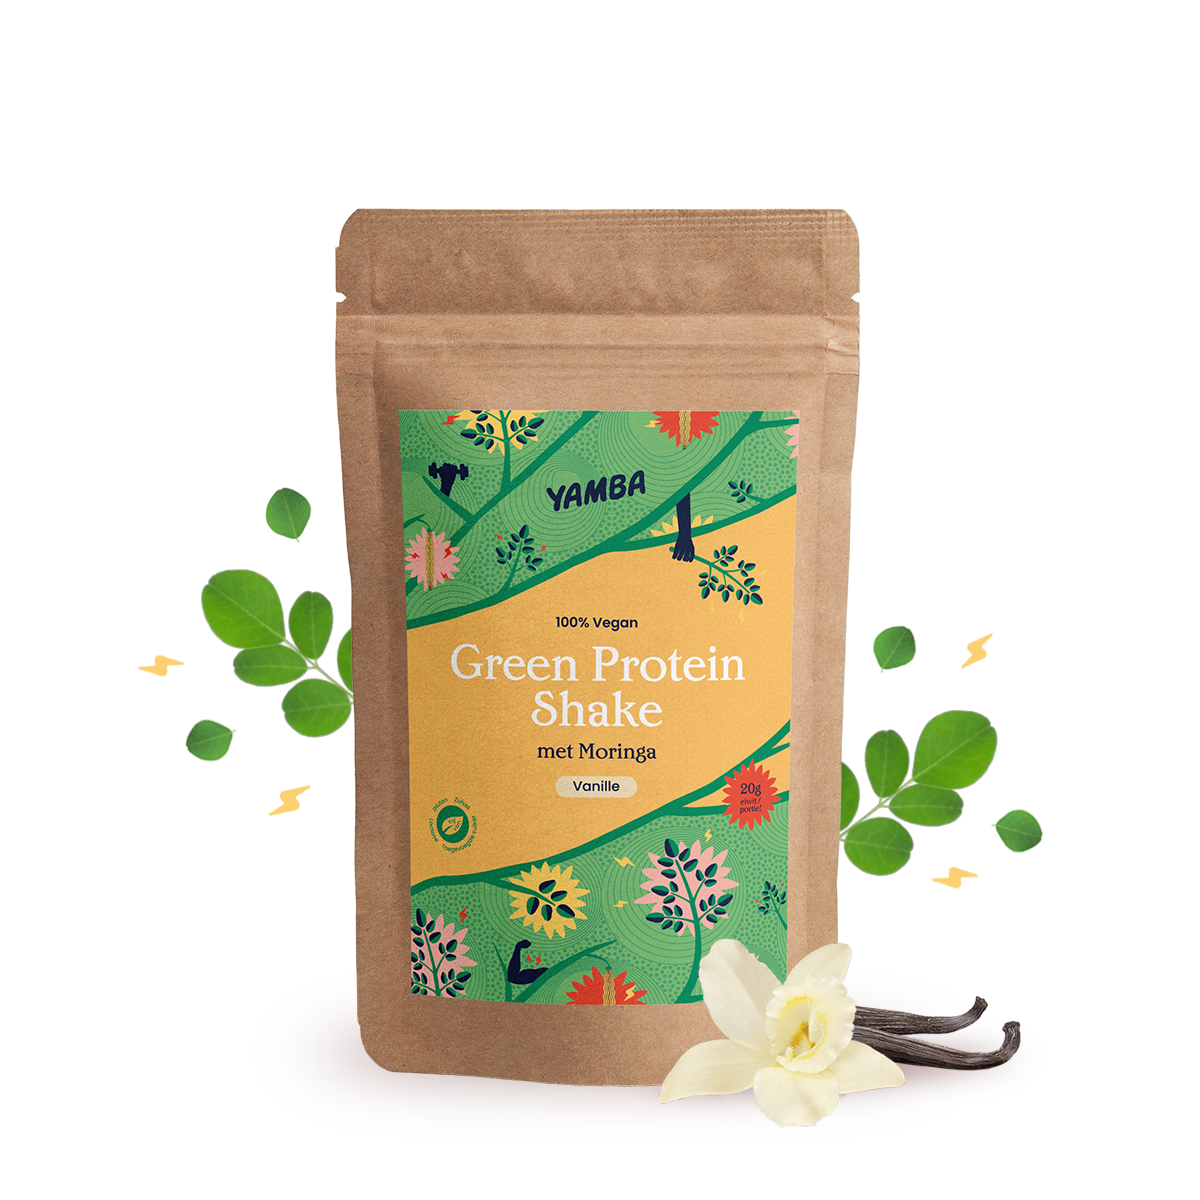 Green Protein Shake Vanille (1kg) packaging